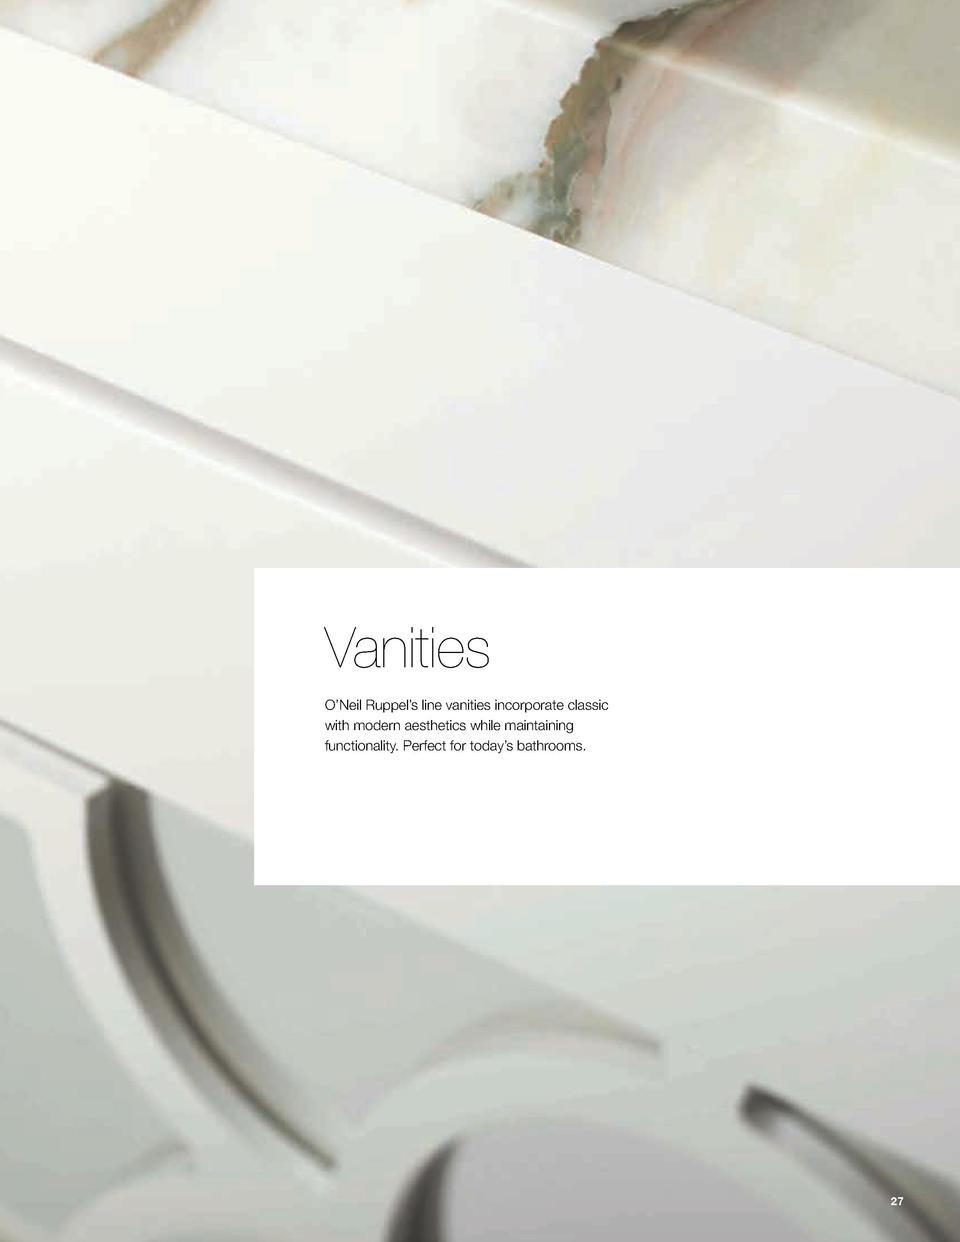 Vanities O   Neil Ruppel   s line vanities incorporate classic with modern aesthetics while maintaining functionality. Per...